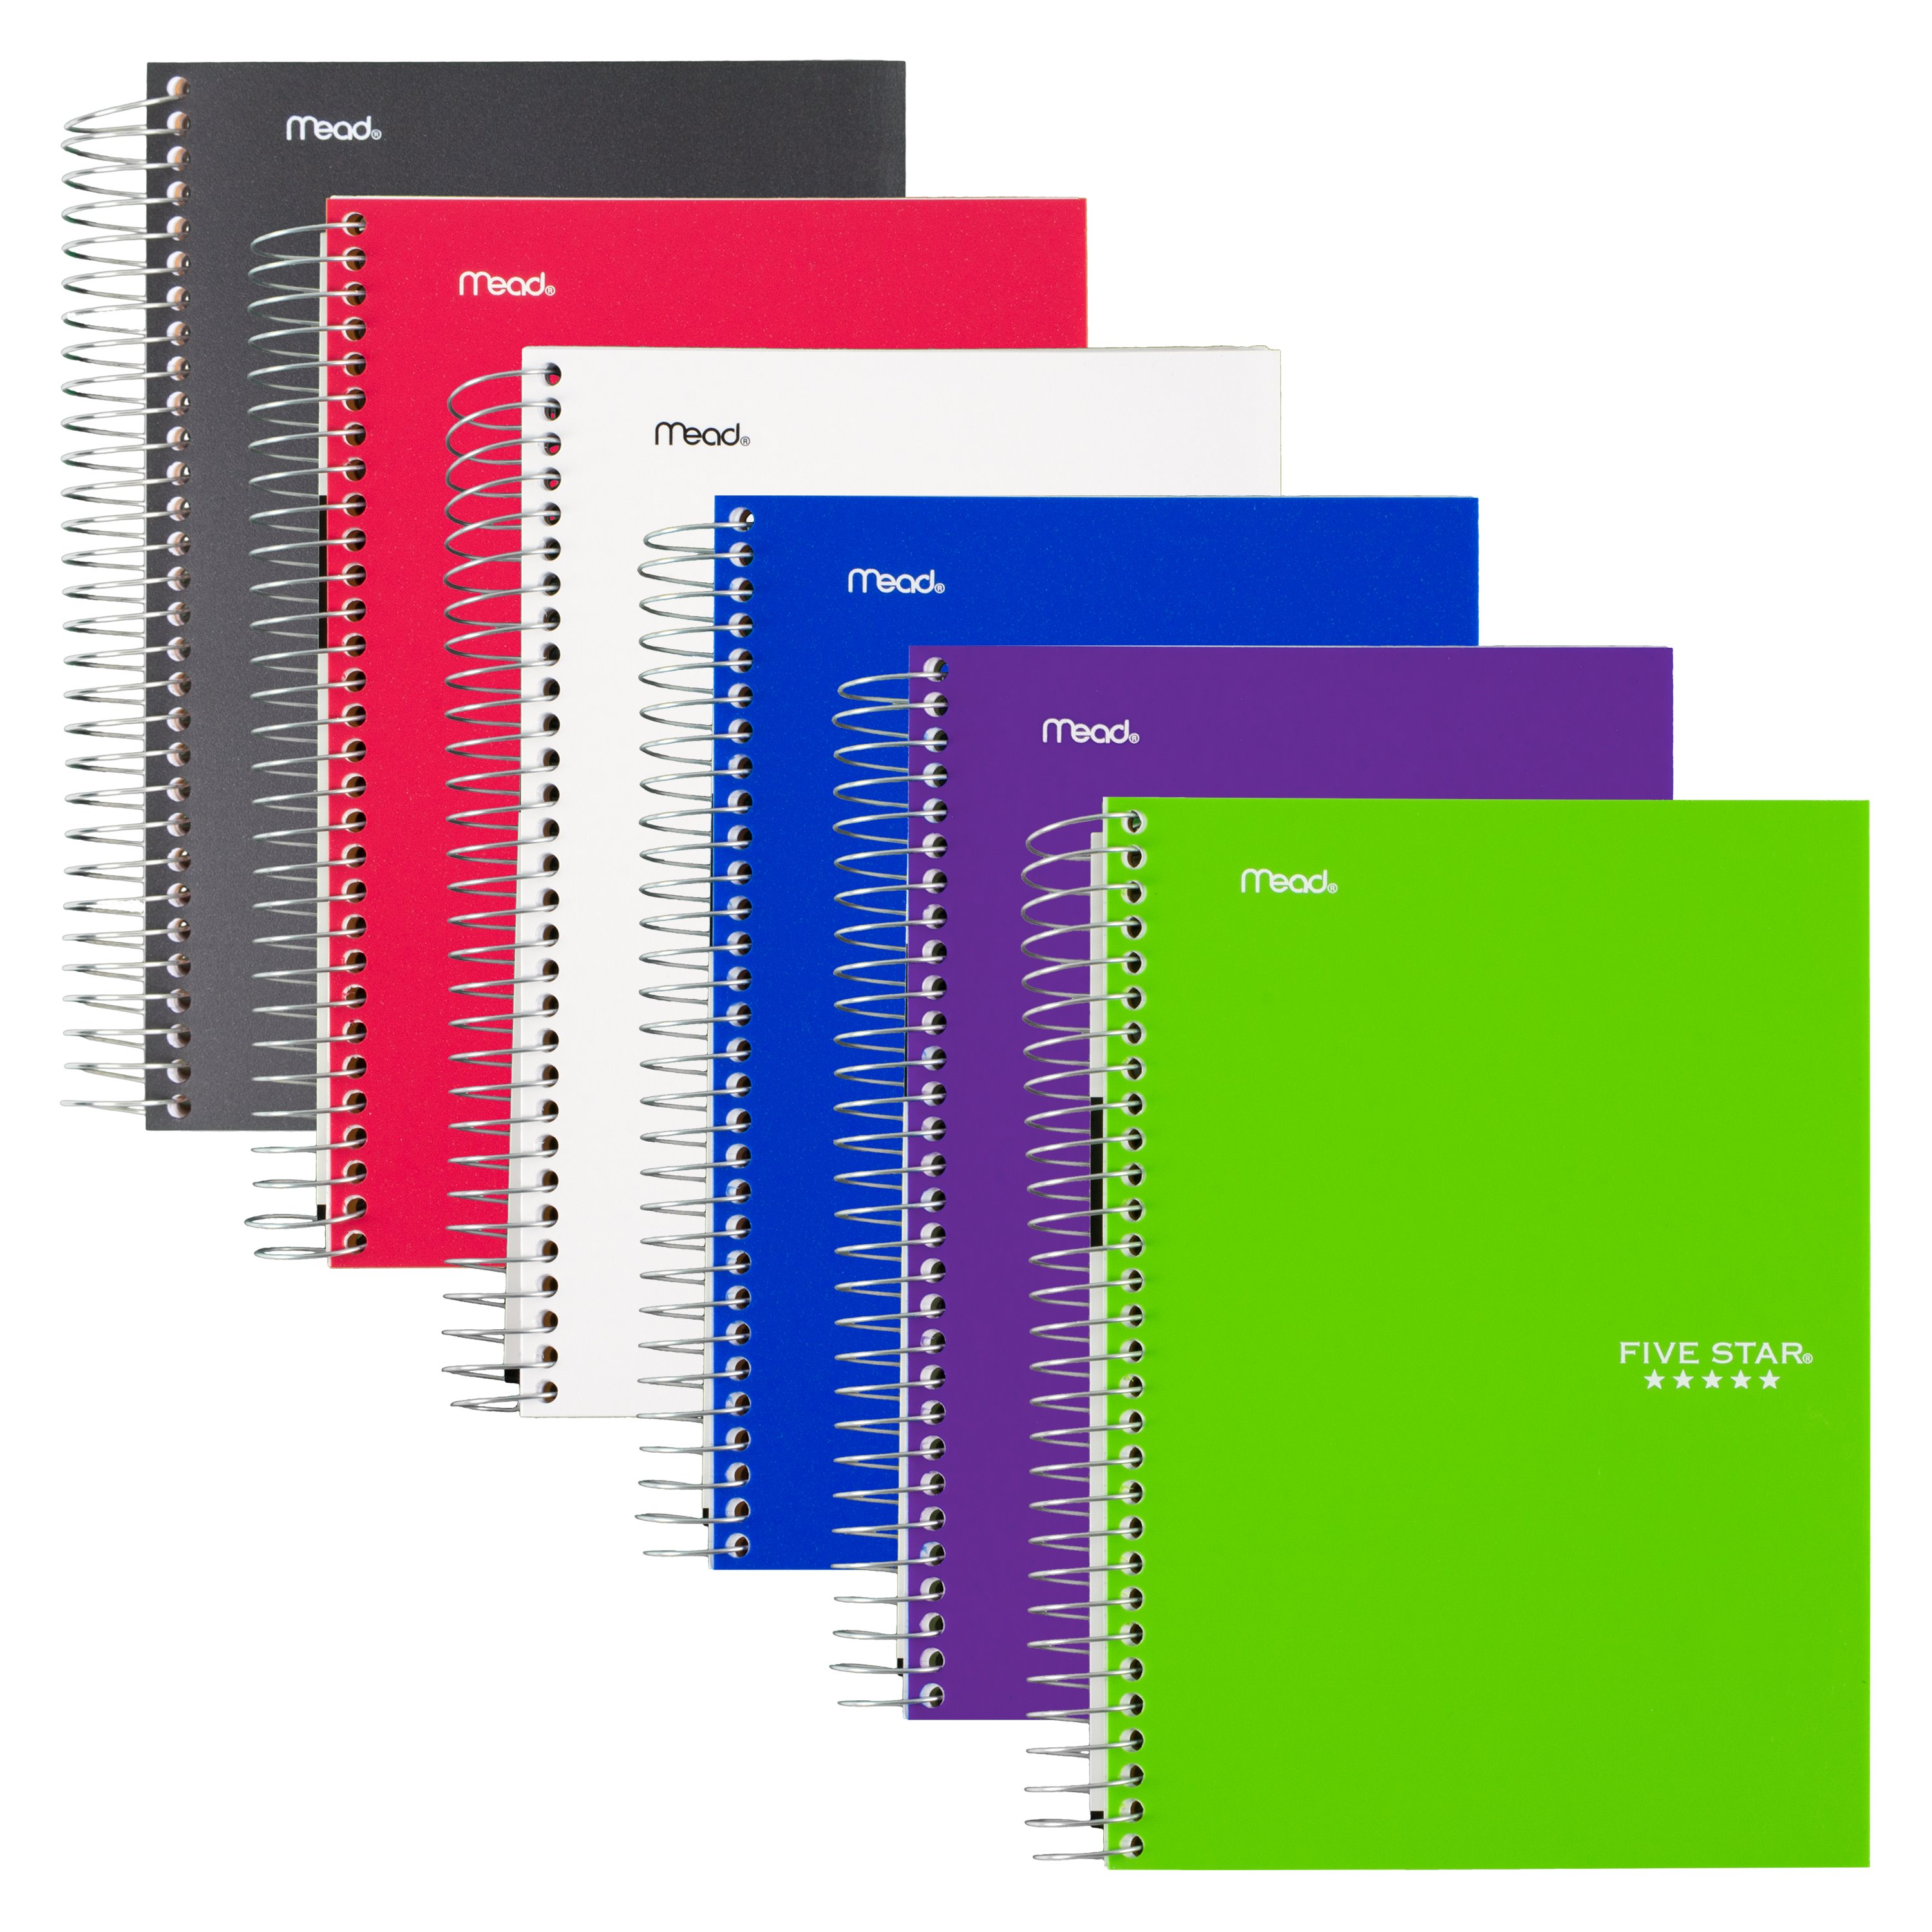 """Five Star Wirebound Notebook, 5 Subject, College Ruled, 9 1/2"""" x 6"""", Assorted Colors, 6 Pack (73527)"""